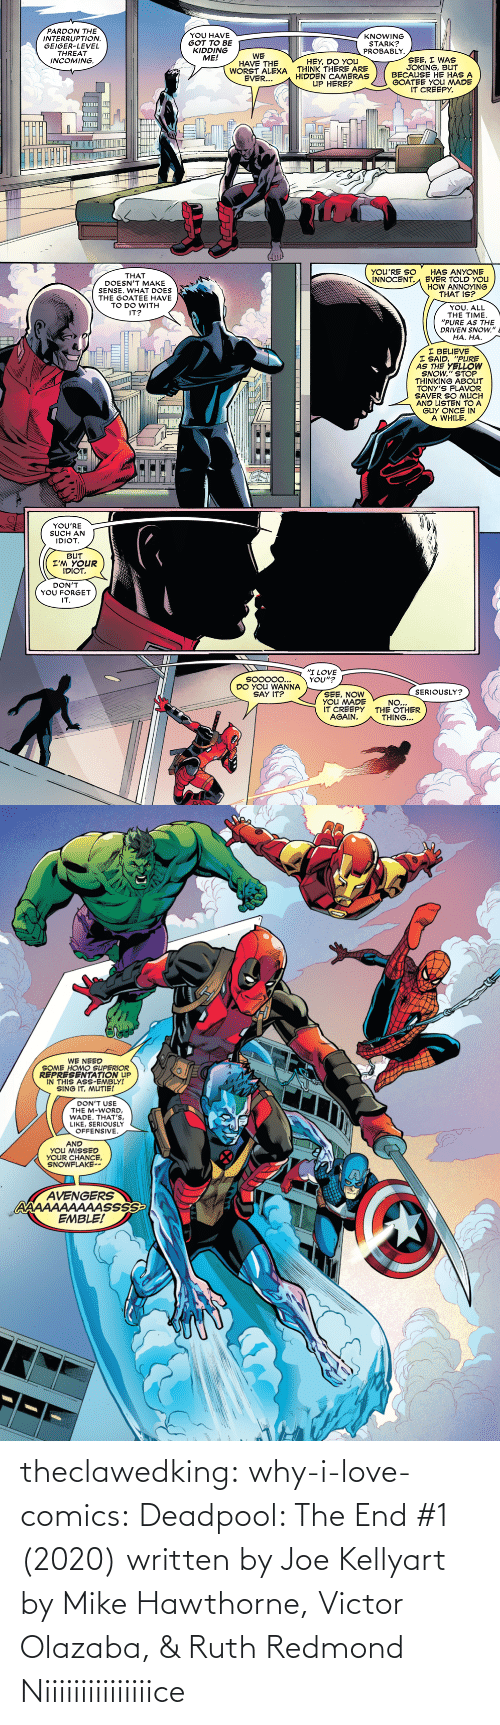 Comics: theclawedking: why-i-love-comics:   Deadpool: The End #1 (2020) written by Joe Kellyart by Mike Hawthorne, Victor Olazaba, & Ruth Redmond    Niiiiiiiiiiiiiiice